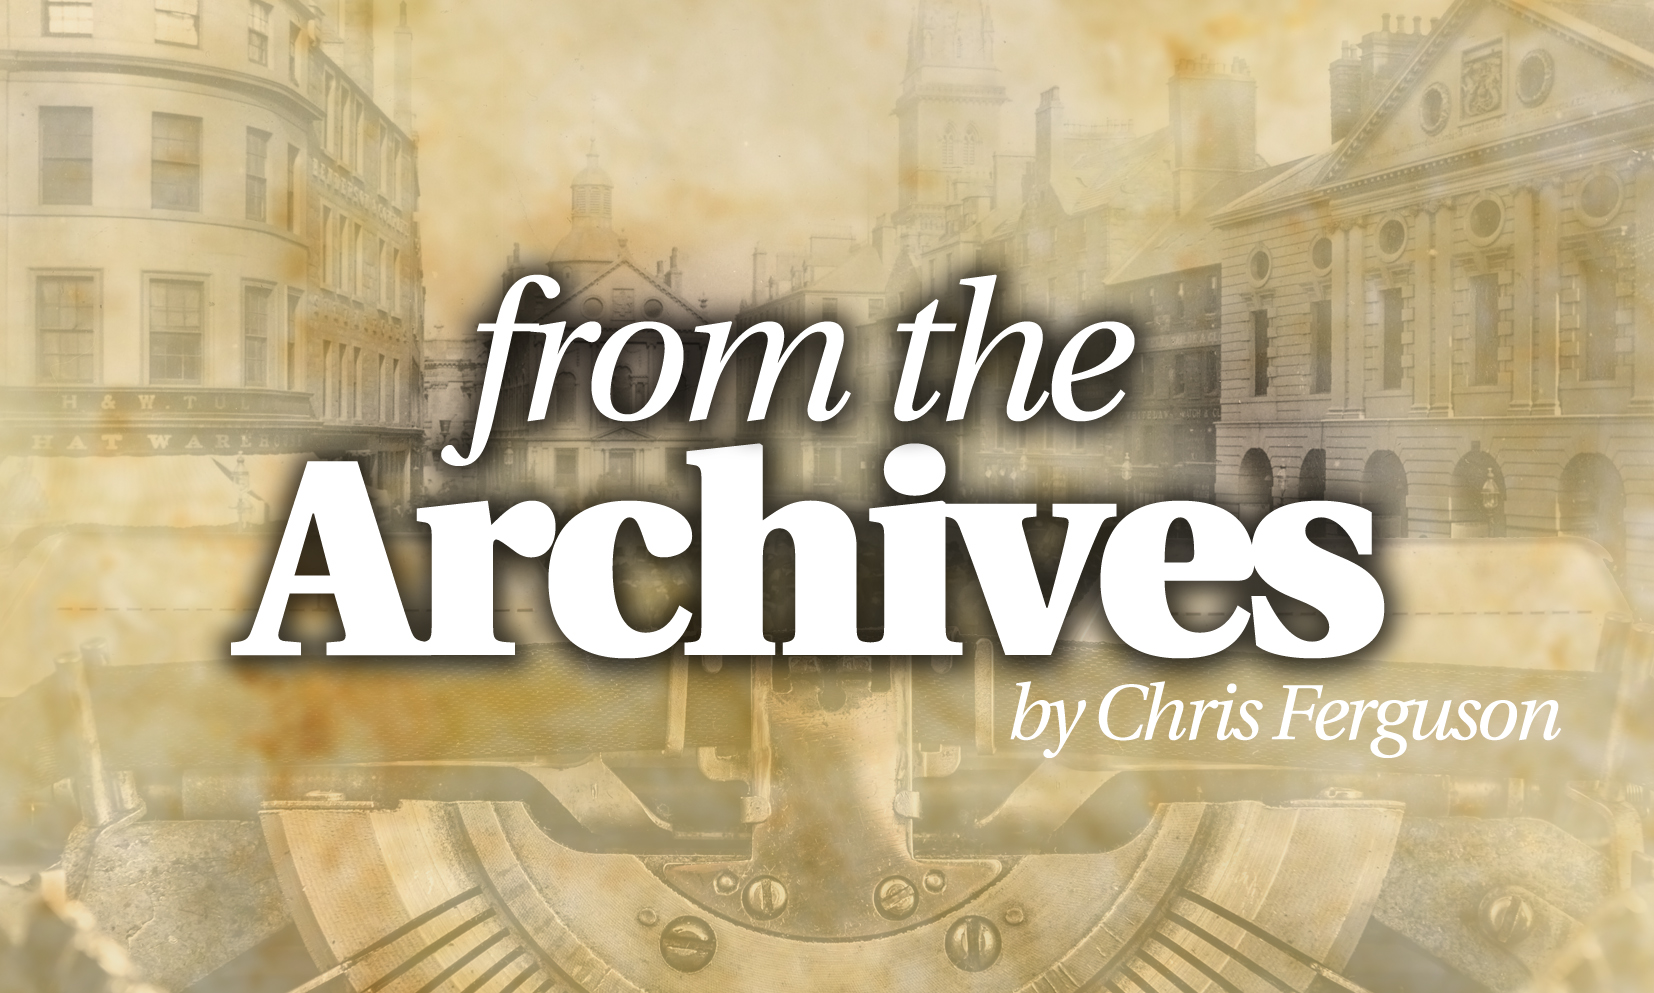 We have been delving into the store of archive stories written by Courier journalist Chris Ferguson.